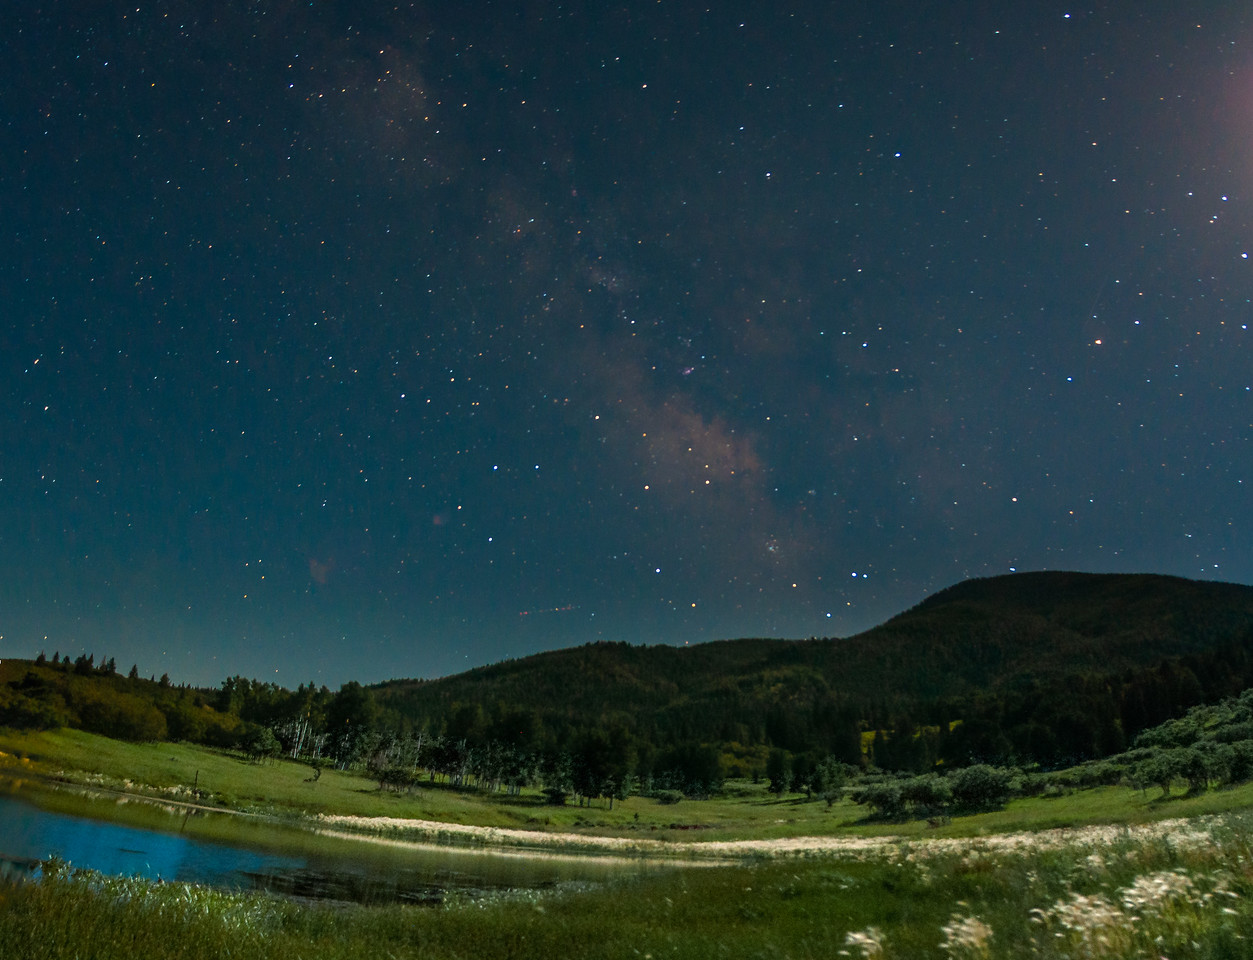 Milkyway over Blue Moutains